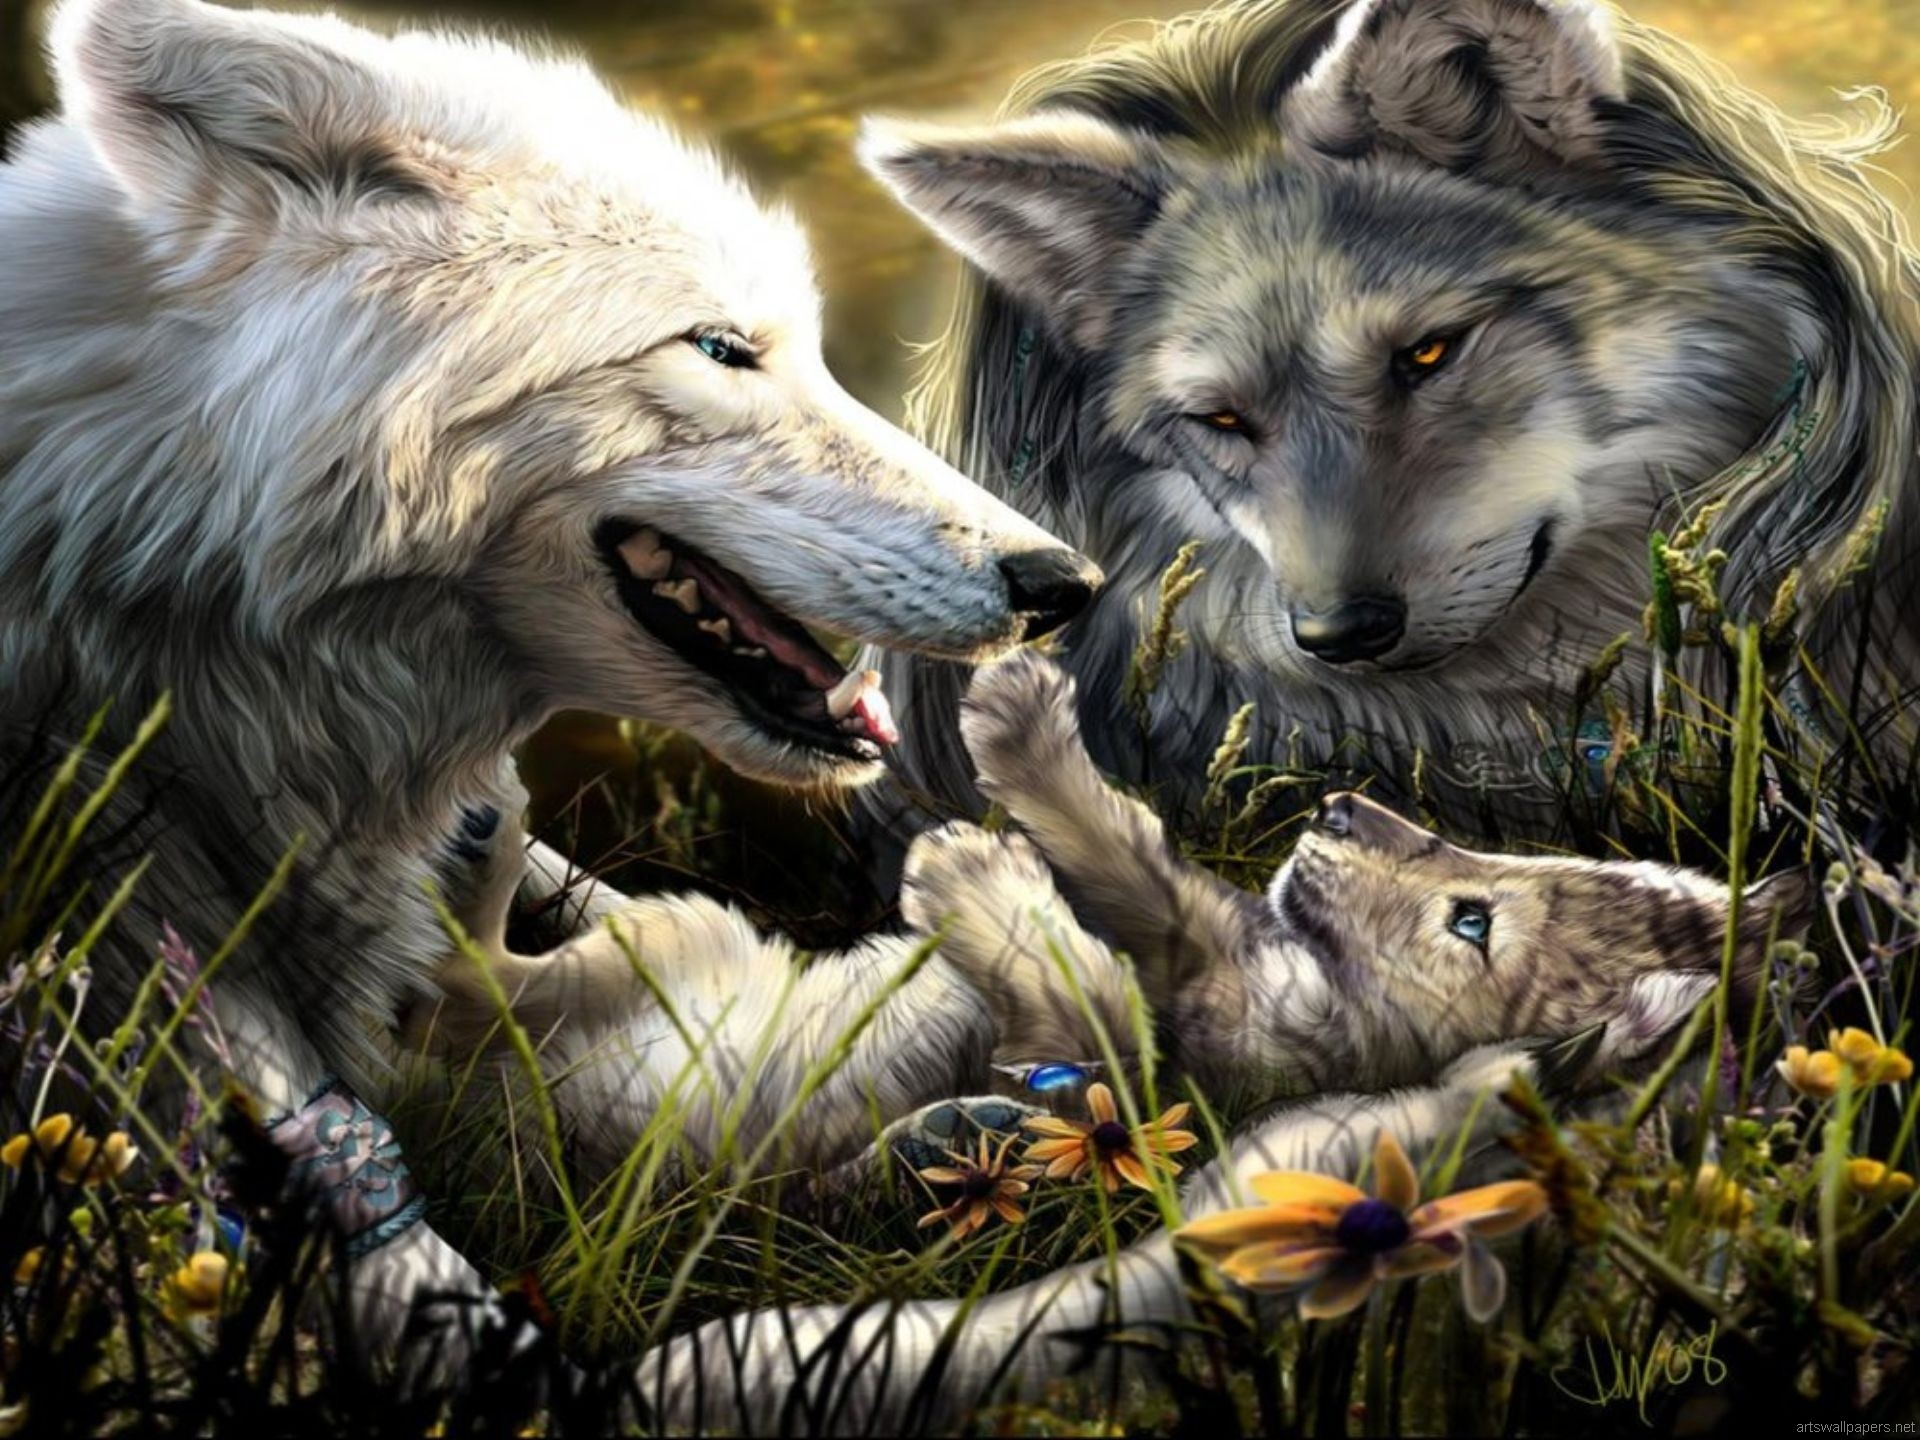 HD Wallpaper and background photos of Wolf Family for fans of Amazing Wolves  images.